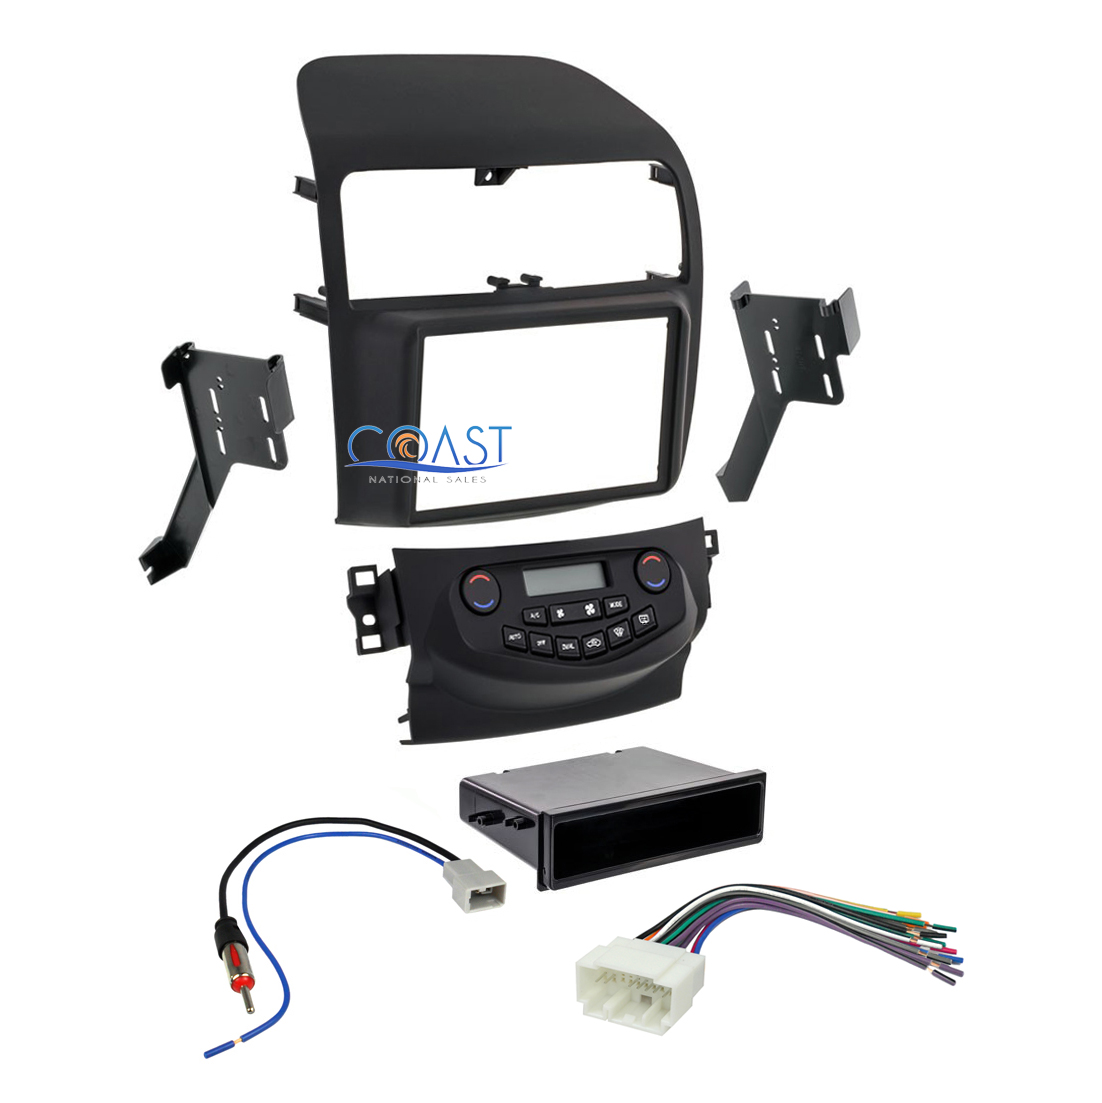 car radio stereo dash kit harness antenna for 2004 2008 Acura TSX 2010 Owner's Manual Acura TSX JDM